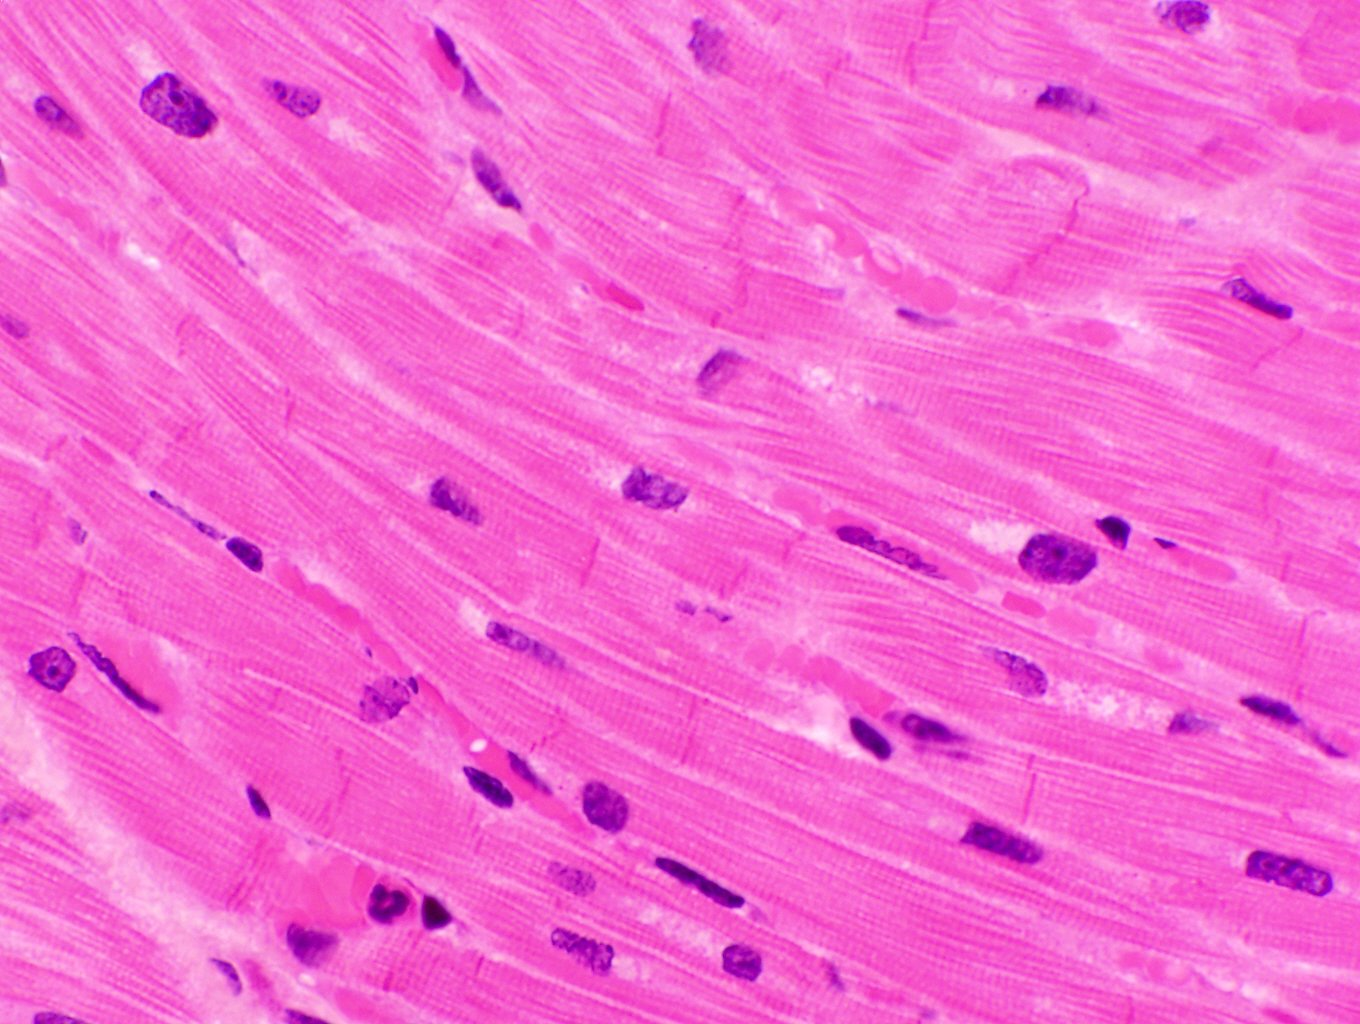 muscle cell under microscope, Muscles